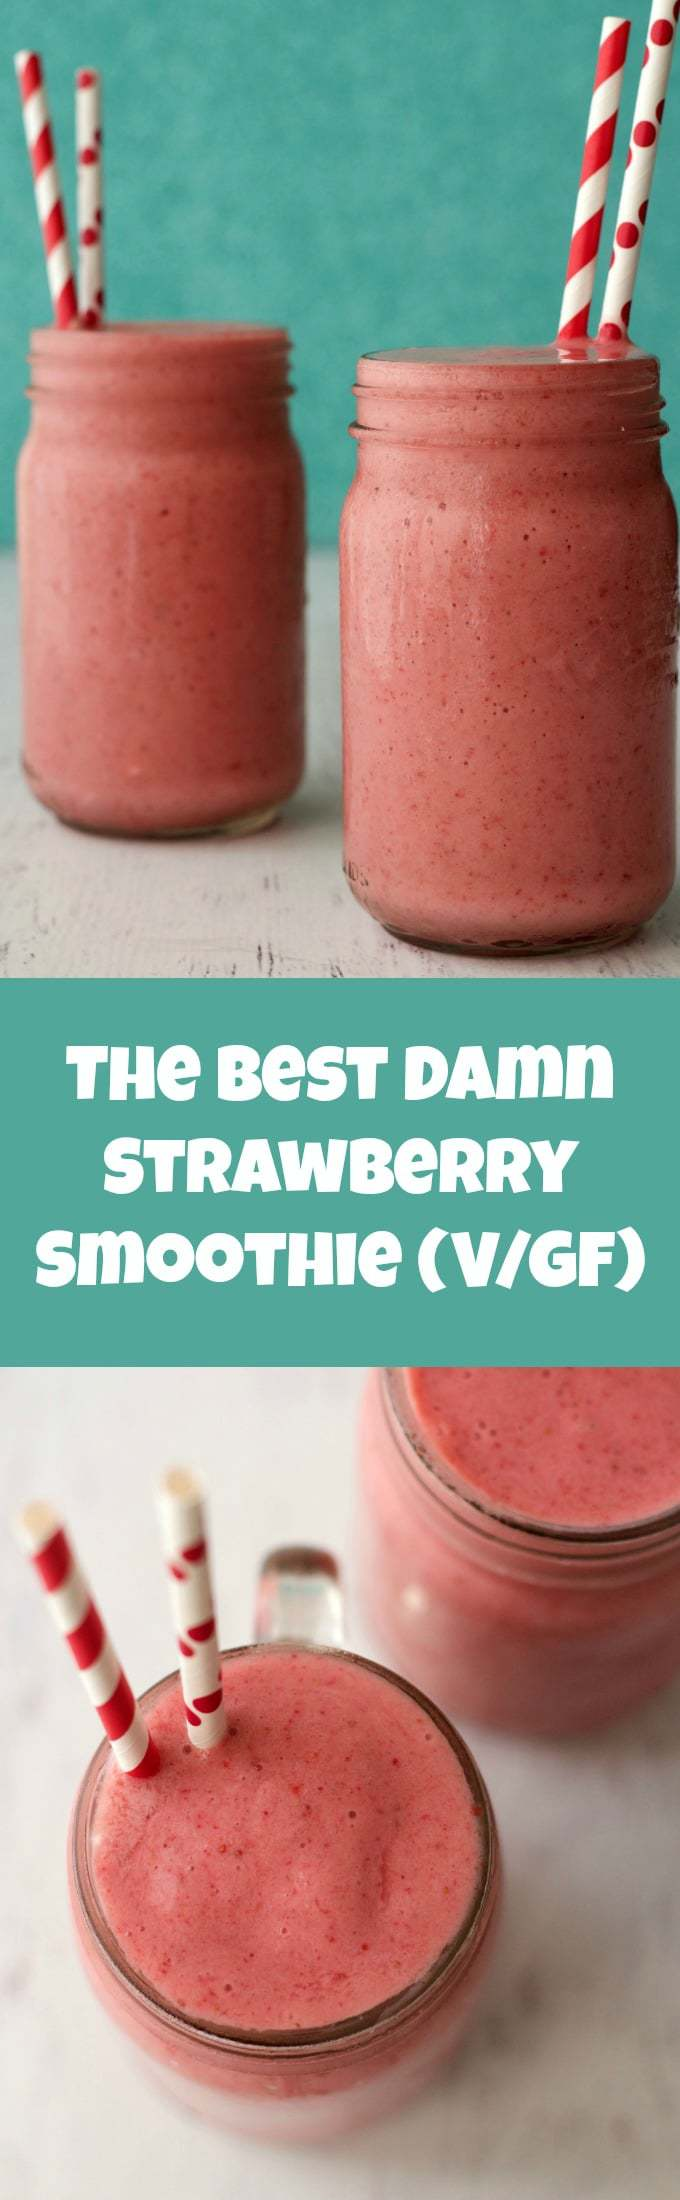 The Best Damn Strawberry Smoothie #vegan #lovingitvegan #smoothie #strawberrysmoothie